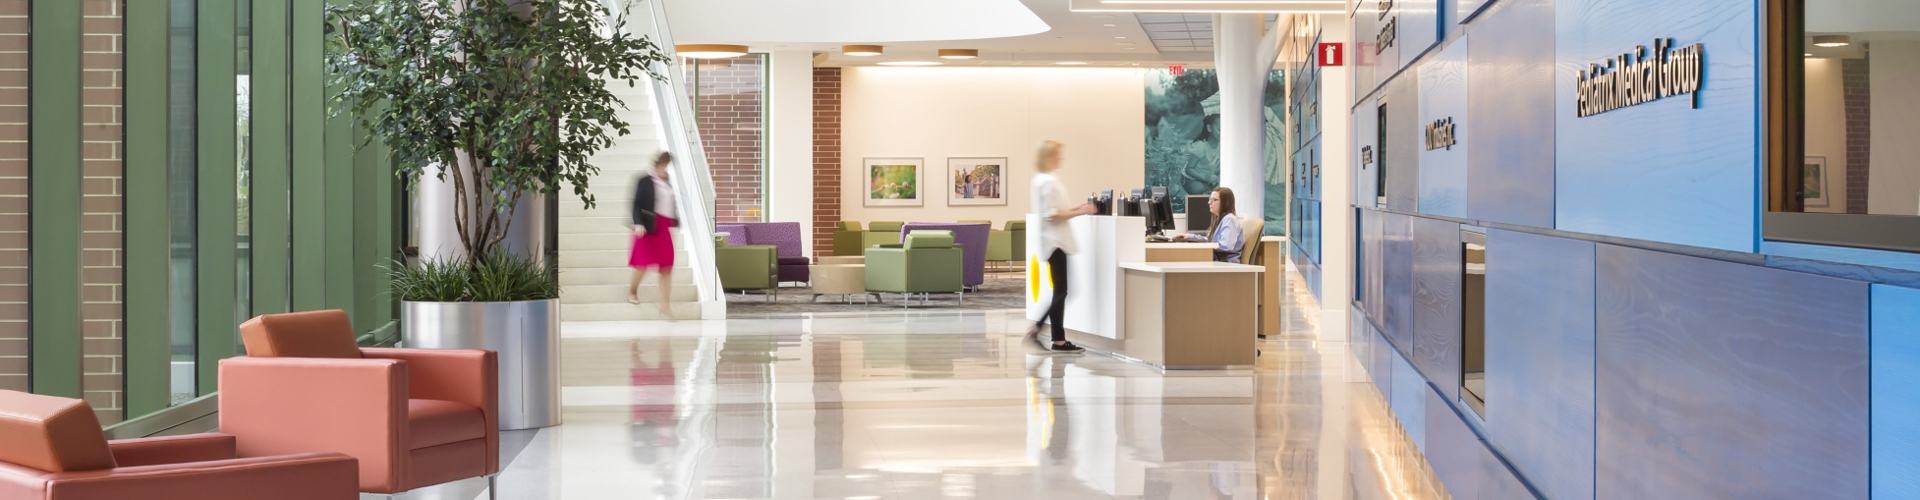 Akron Children's Hospital Kay Jewelers Pavilion, Submitted By HKS, Inc.